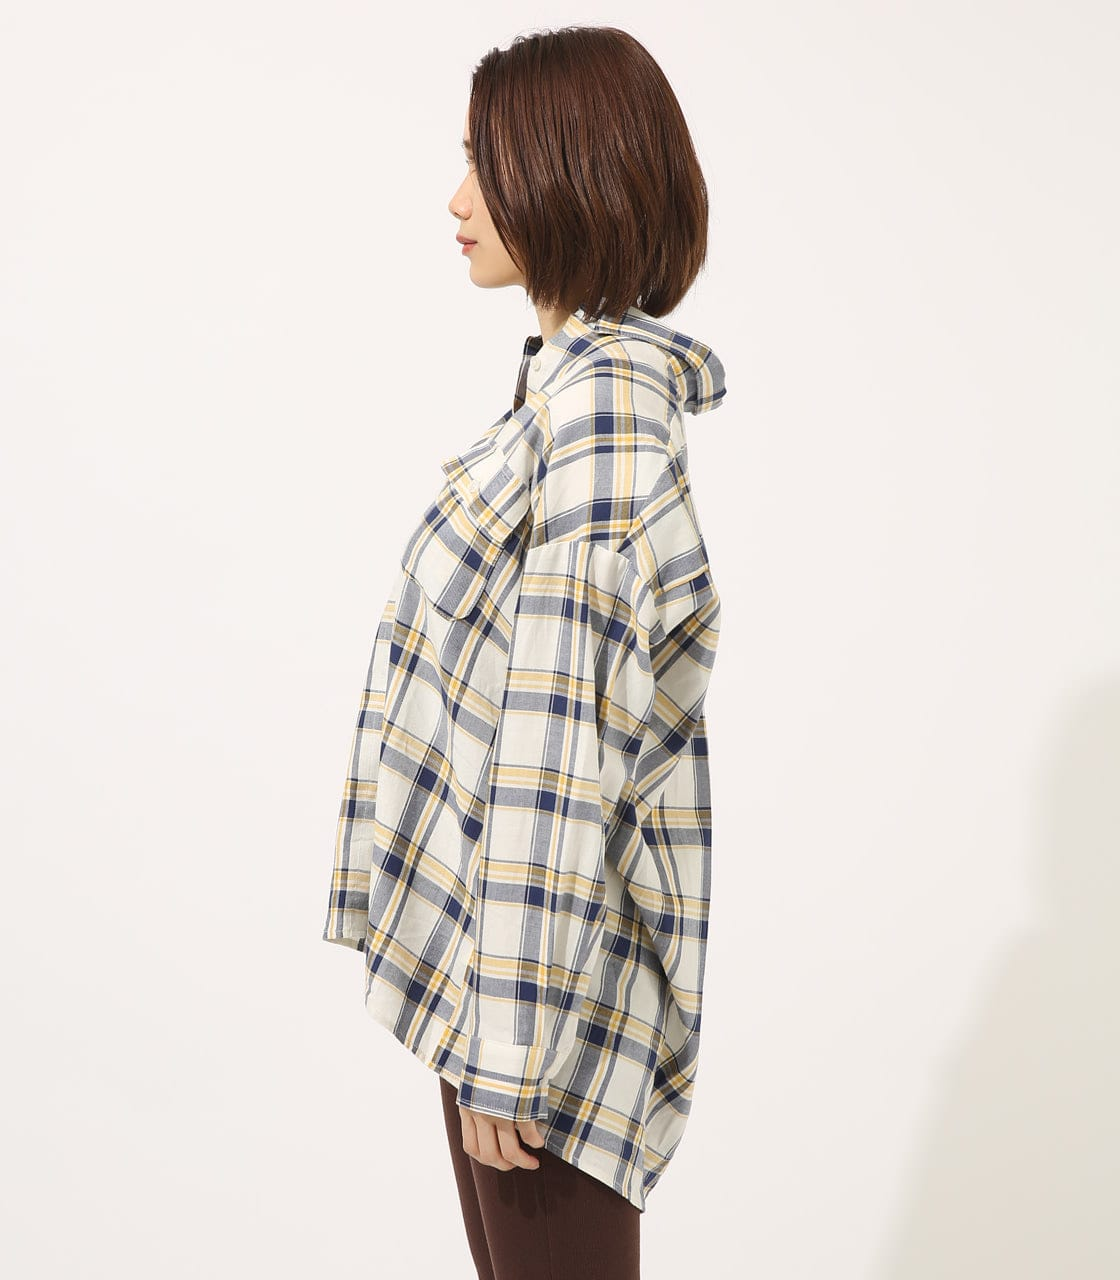 【AZUL BY MOUSSY】MADRAS CHECK SHIRT【MOOK50掲載 90135】 詳細画像 柄WHT 5